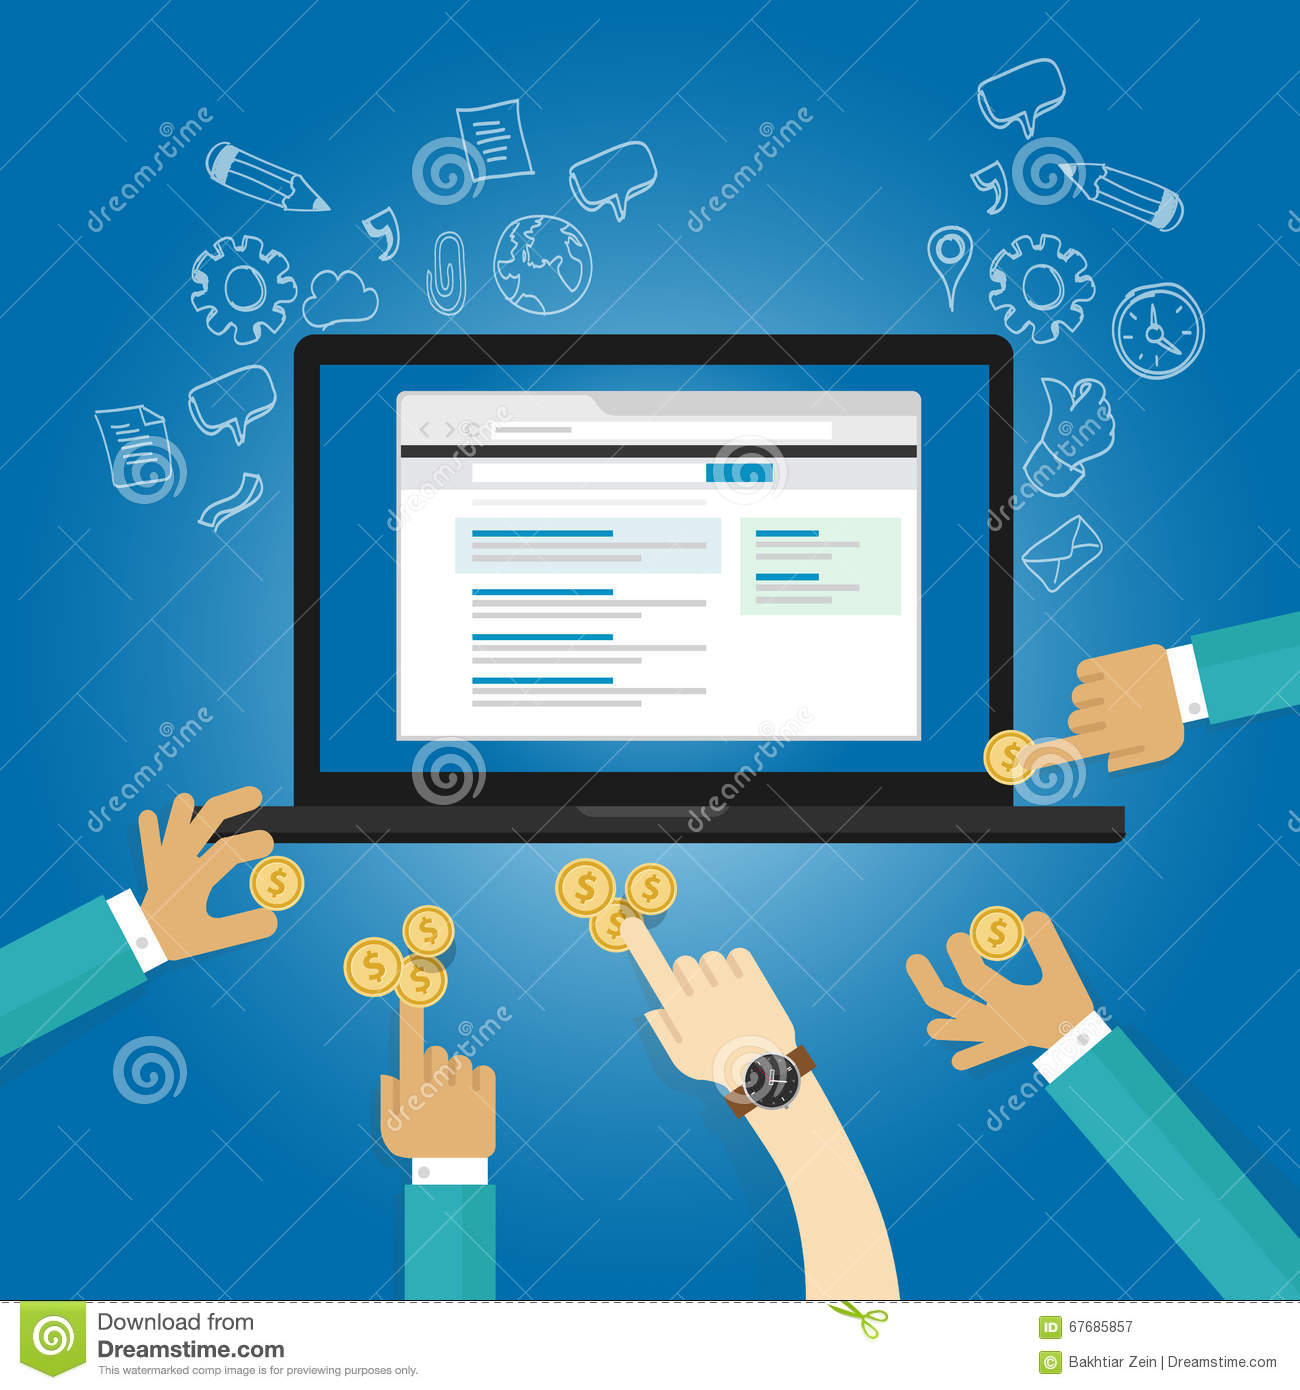 Ads bidding online advertising pay realtime per click view payment contribution donation